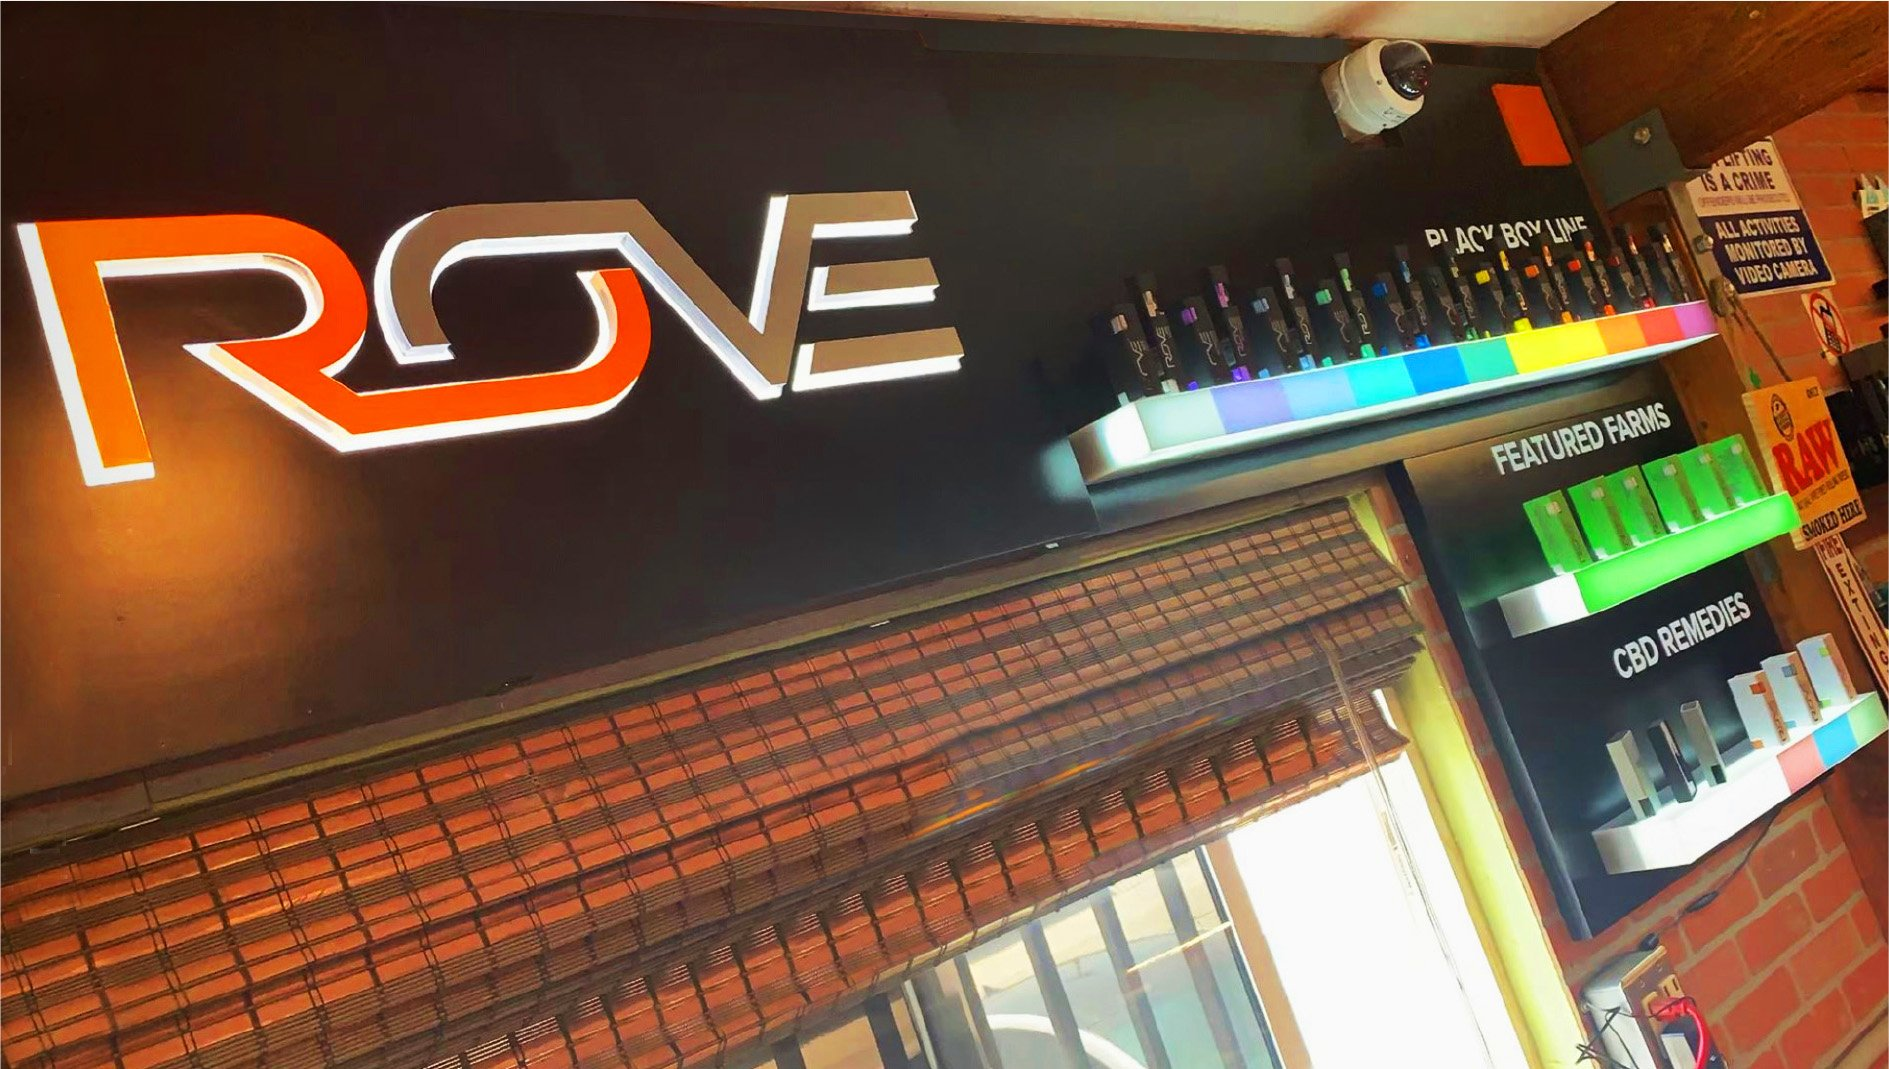 Rove Brand in-store lighted display